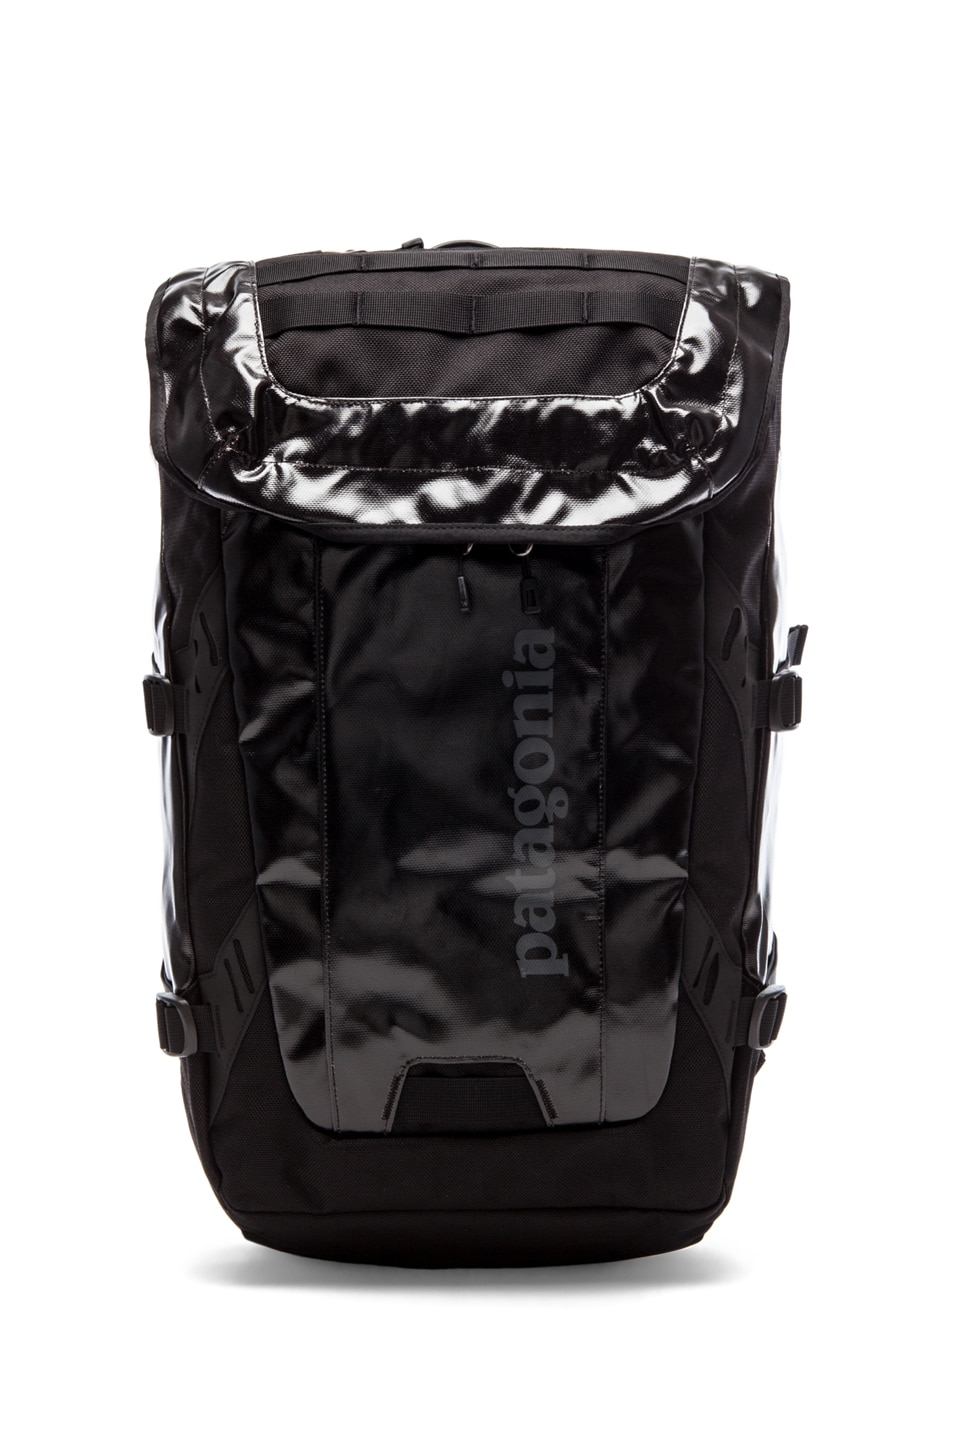 Patagonia Black Hole Pack 35L in Black